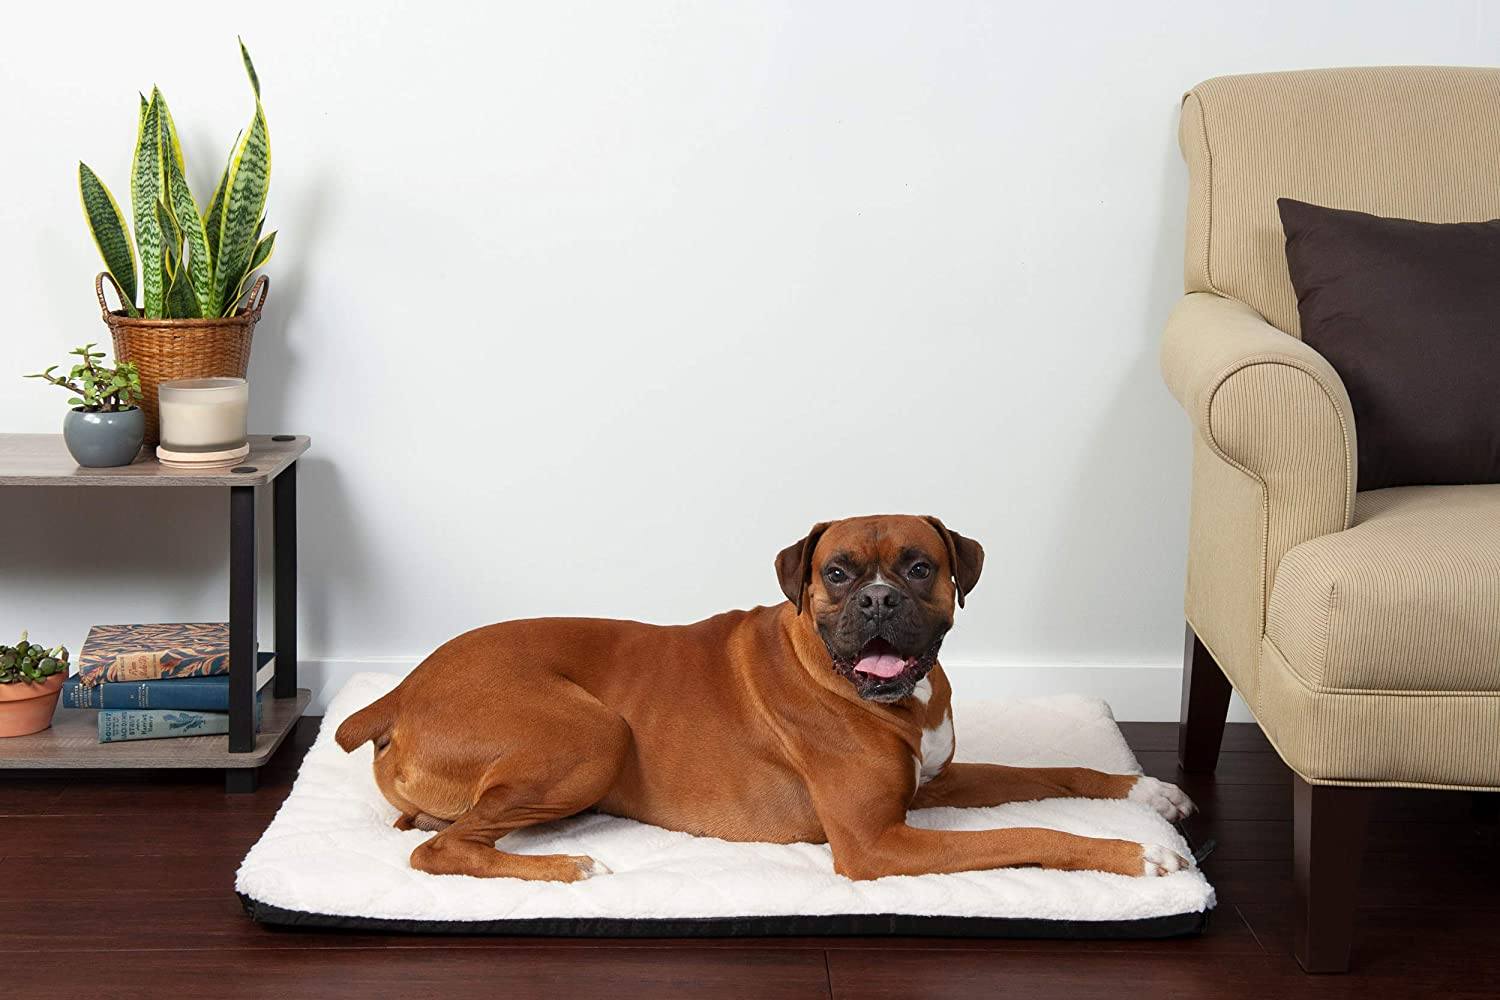 Furhaven Pet Dog Bed Kennel Pad   Orthopedic Water-Repellent Crate or Kennel Low Profile Step-On Foam Mattress Pet Bed w/ Removable Cover for Dogs & Cats - Available in Multiple Colors & Styles